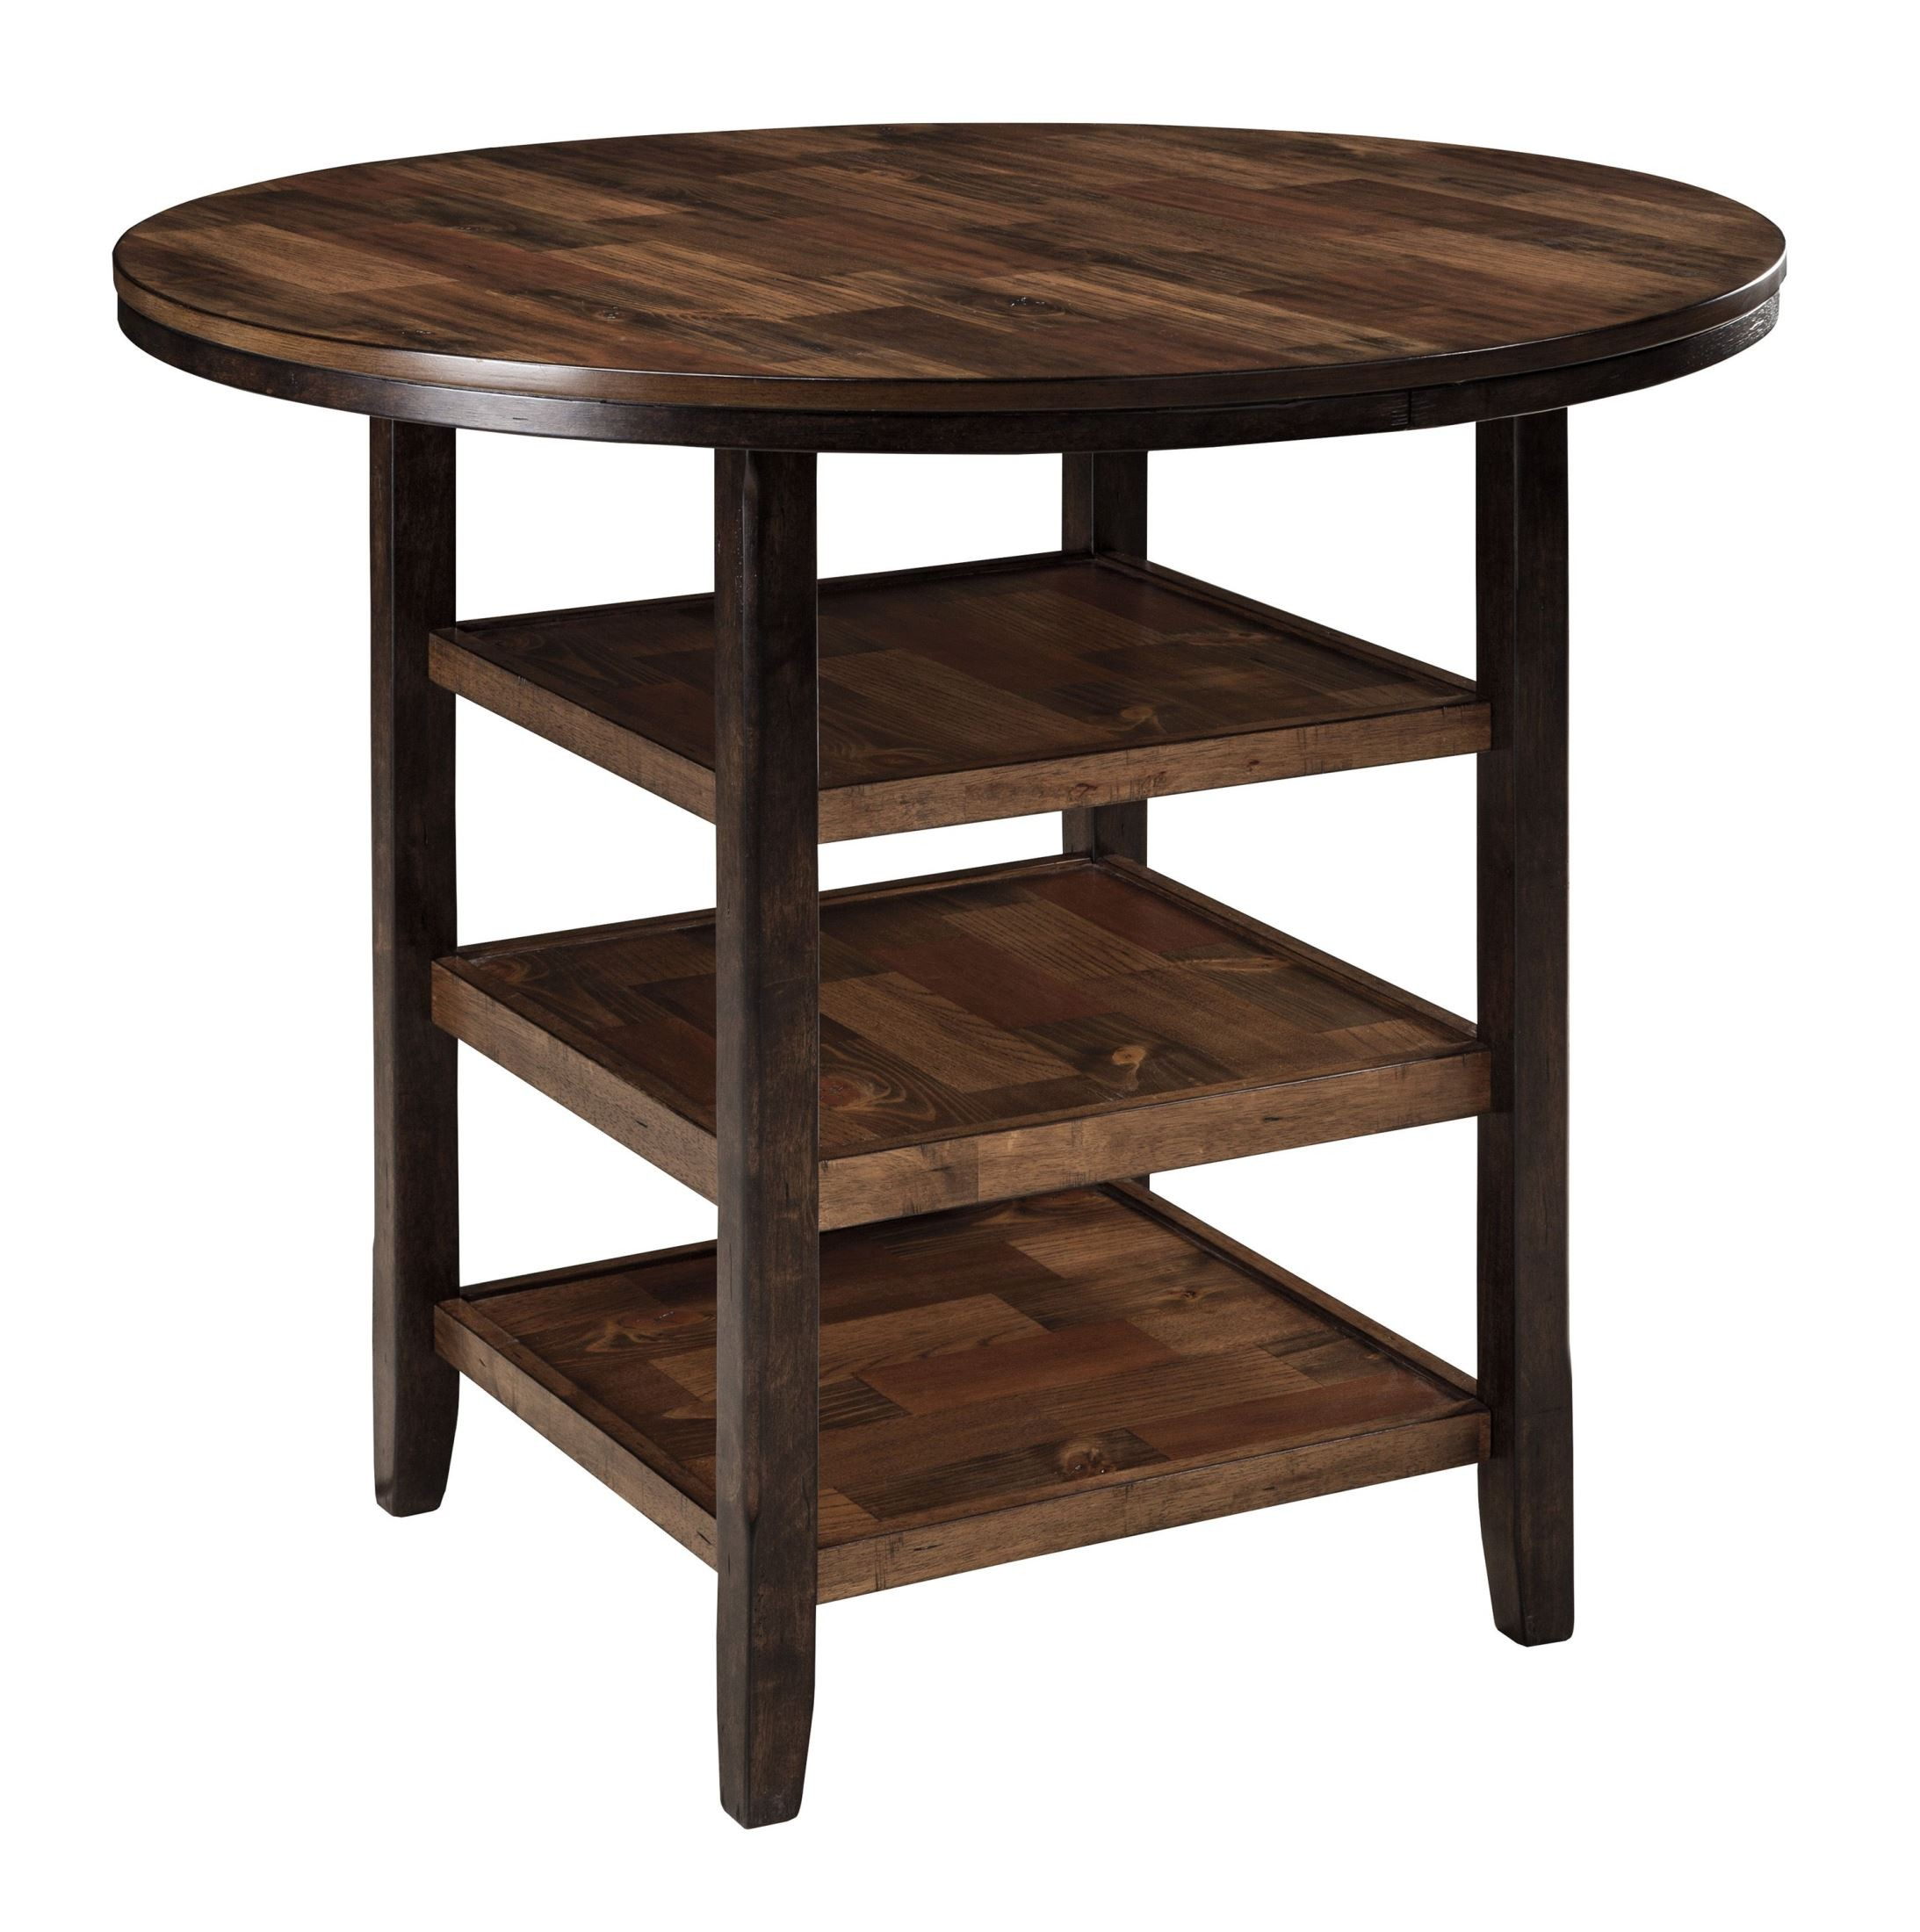 Moriann round counter height dining room table from ashley d608 13 coleman furniture Counter height dining table